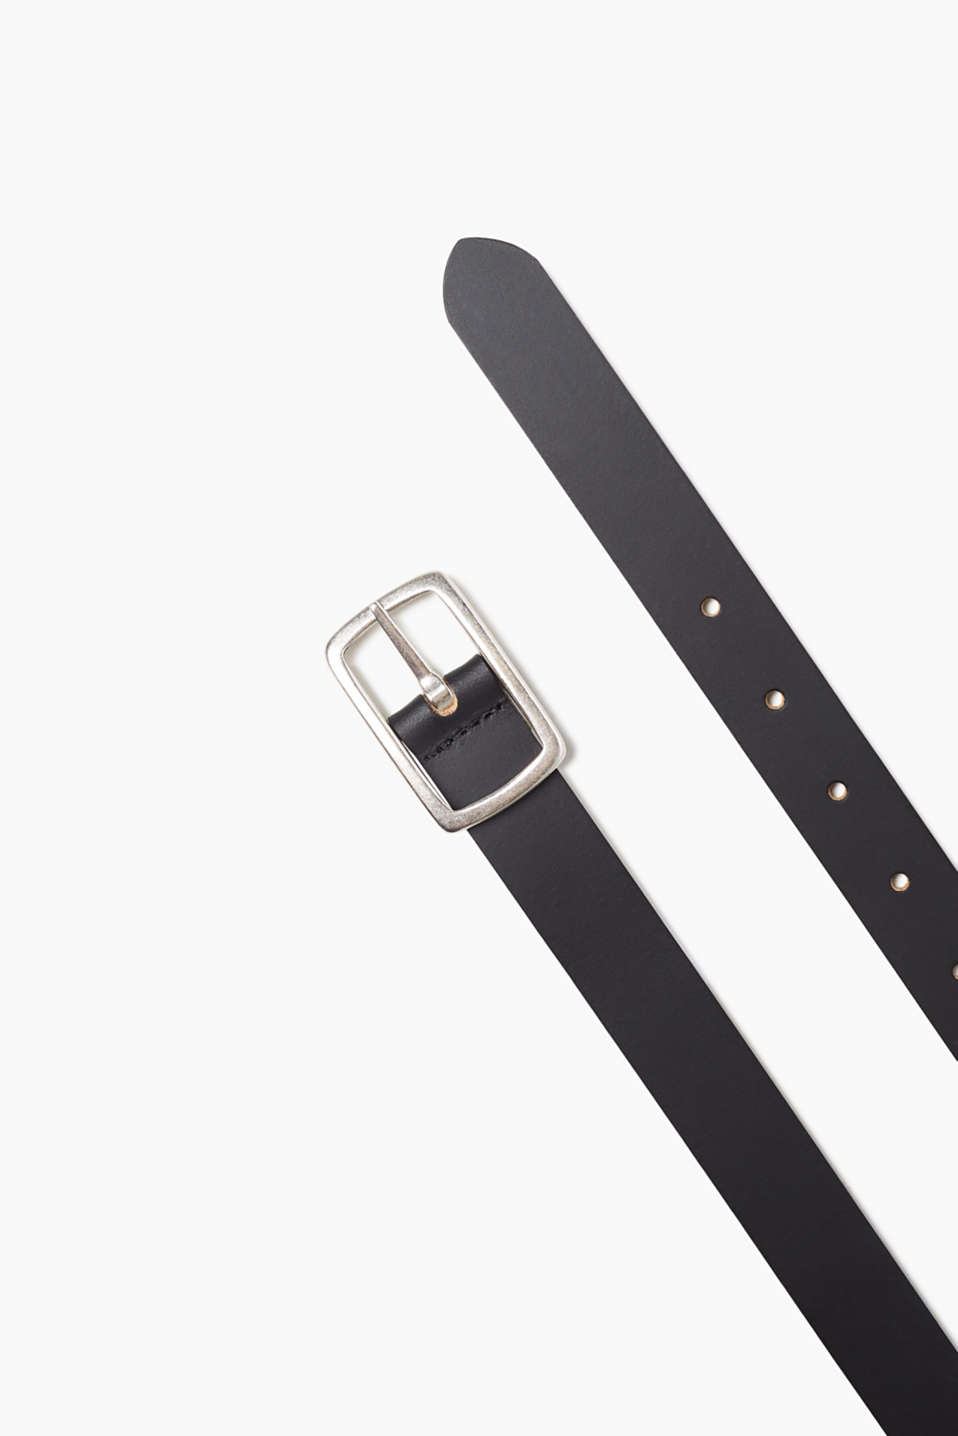 With two good sides: reversible belt with a plain side and camouflage look, 100% leather